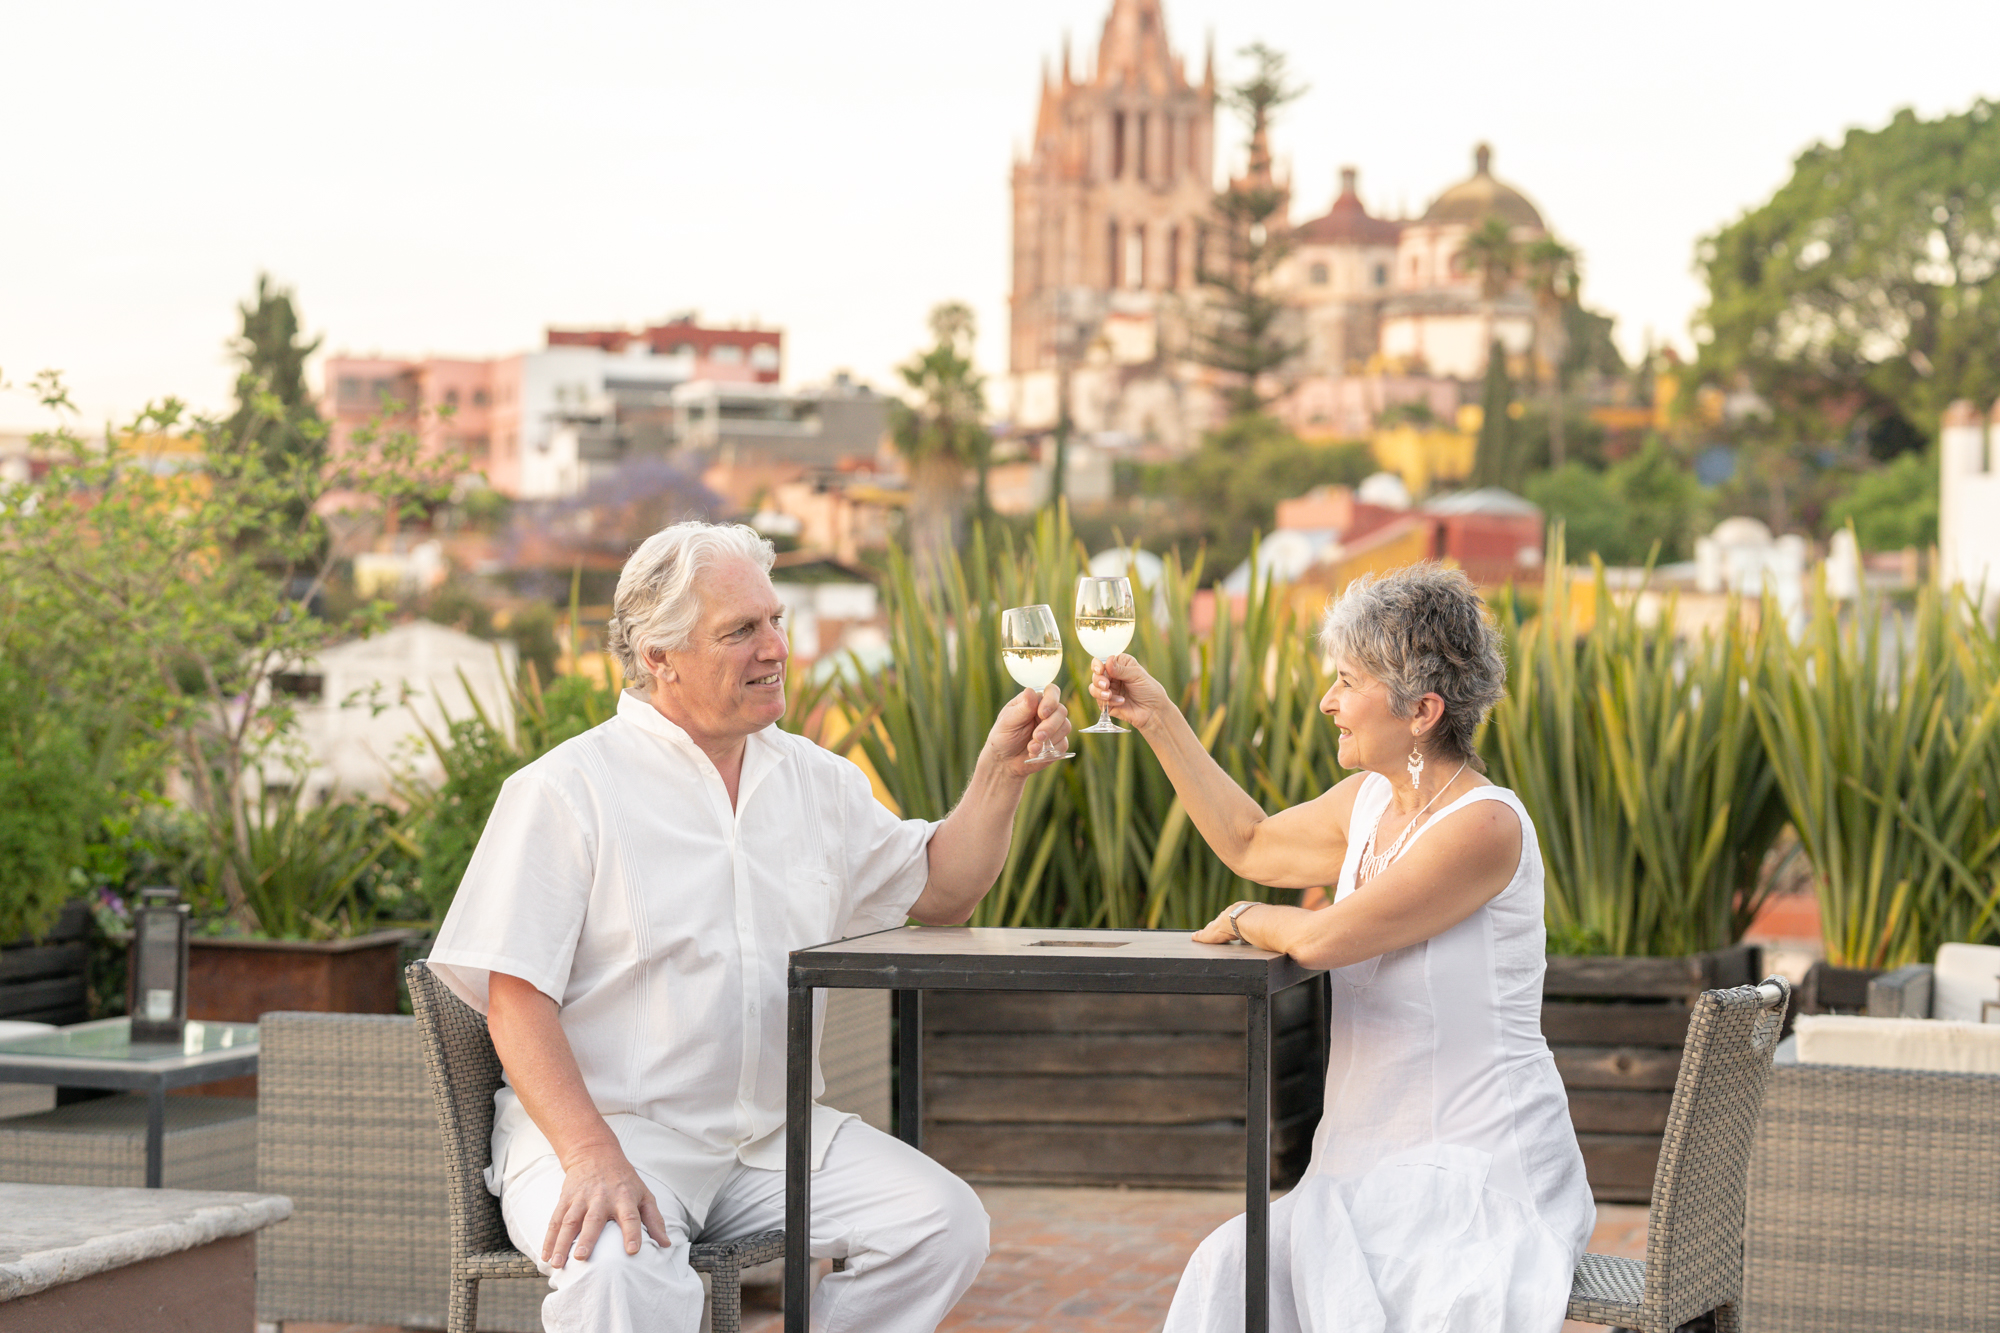 Photoshoot session in San Miguel de Allende with Suzanne and Leo-62.jpg